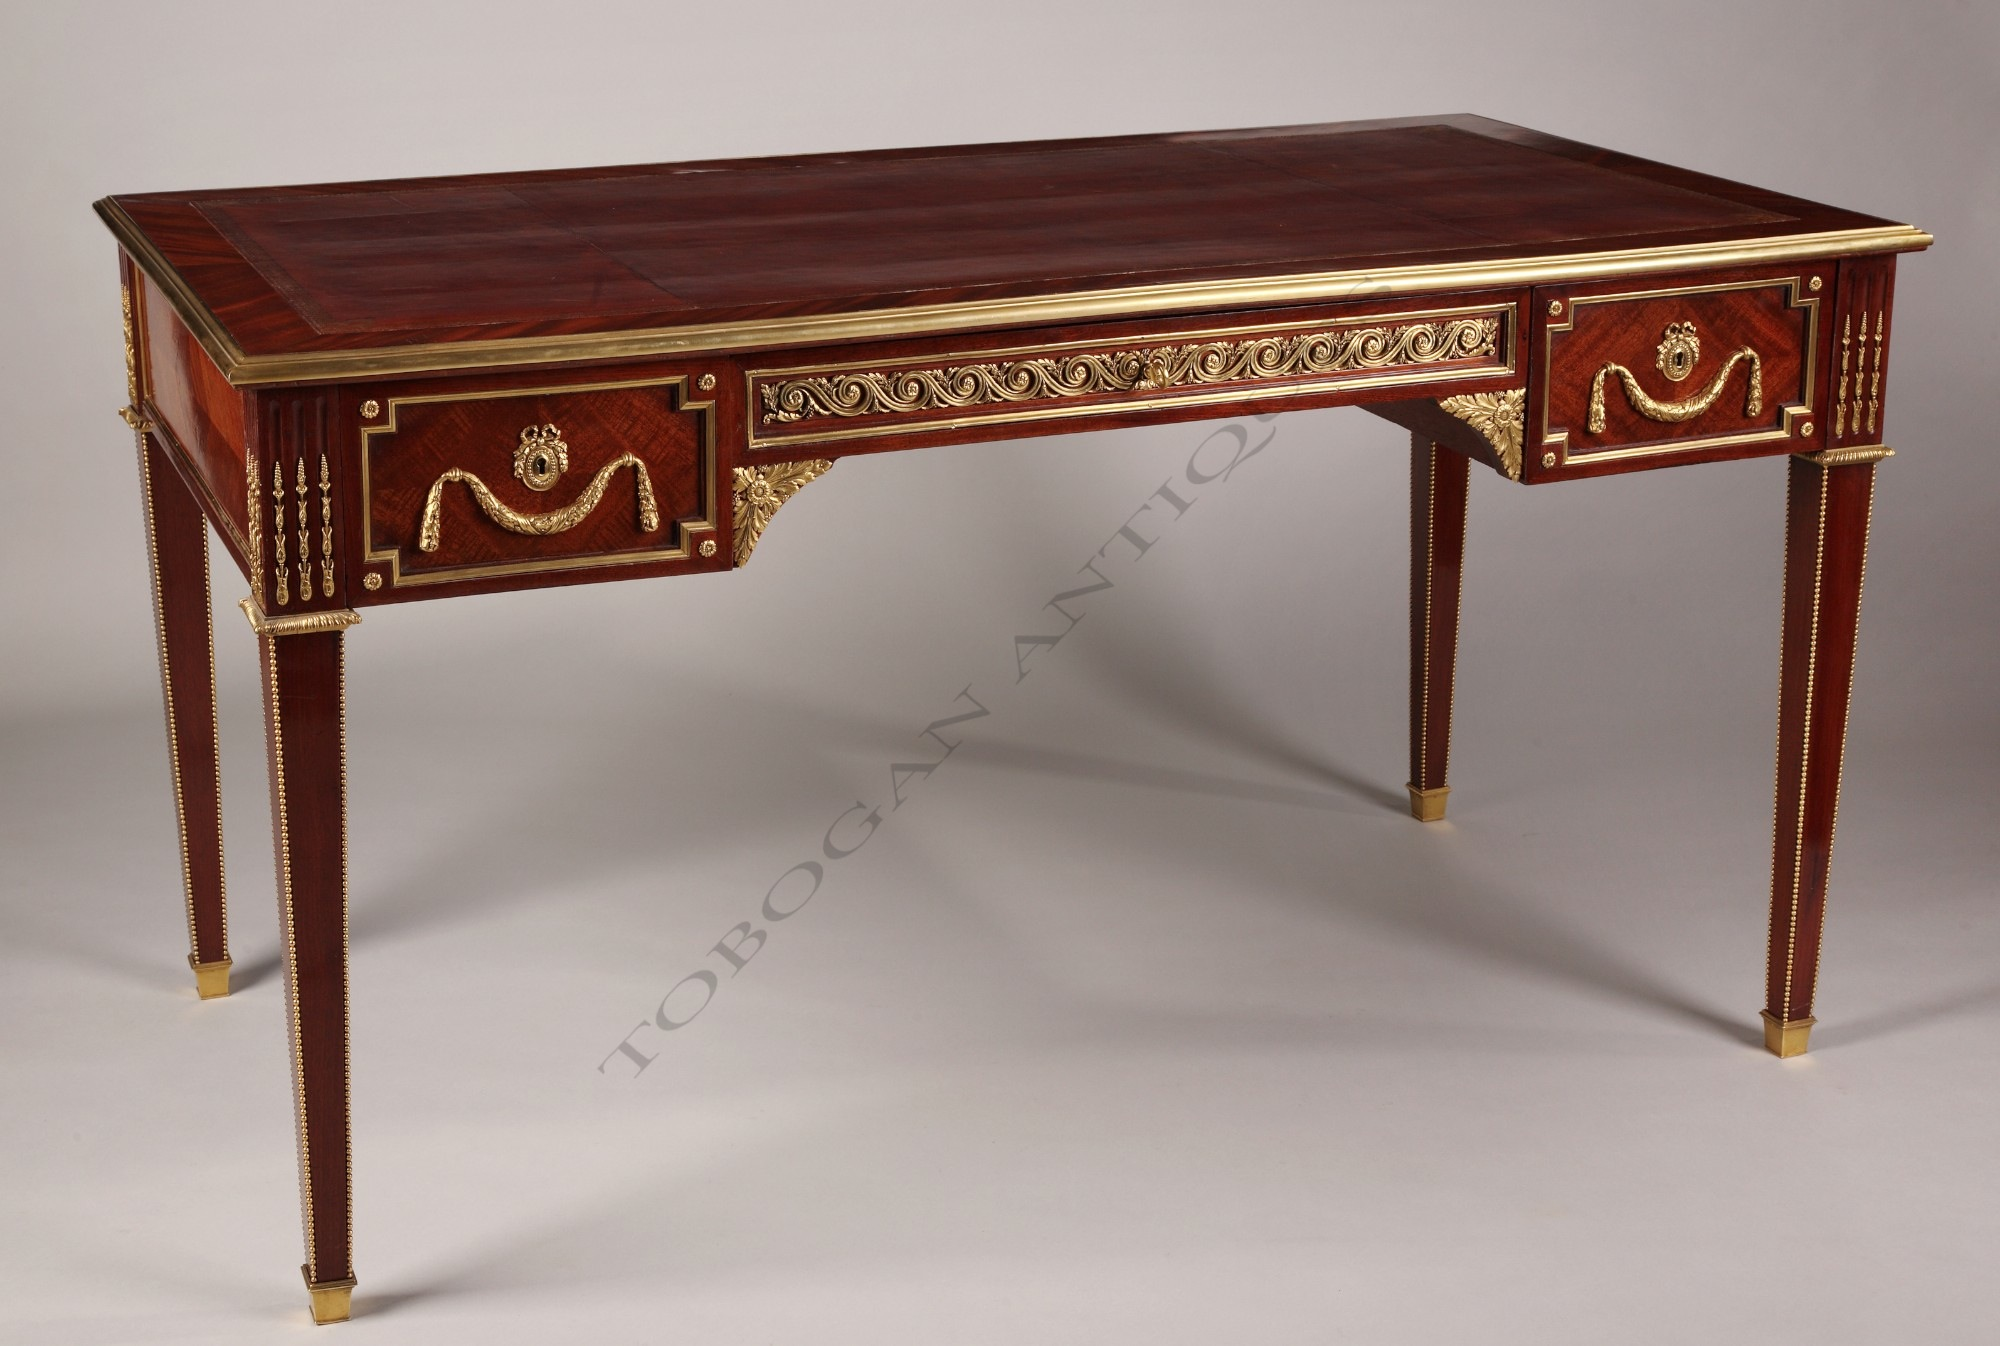 a louis xvi style bureau plat tobogan antiques. Black Bedroom Furniture Sets. Home Design Ideas